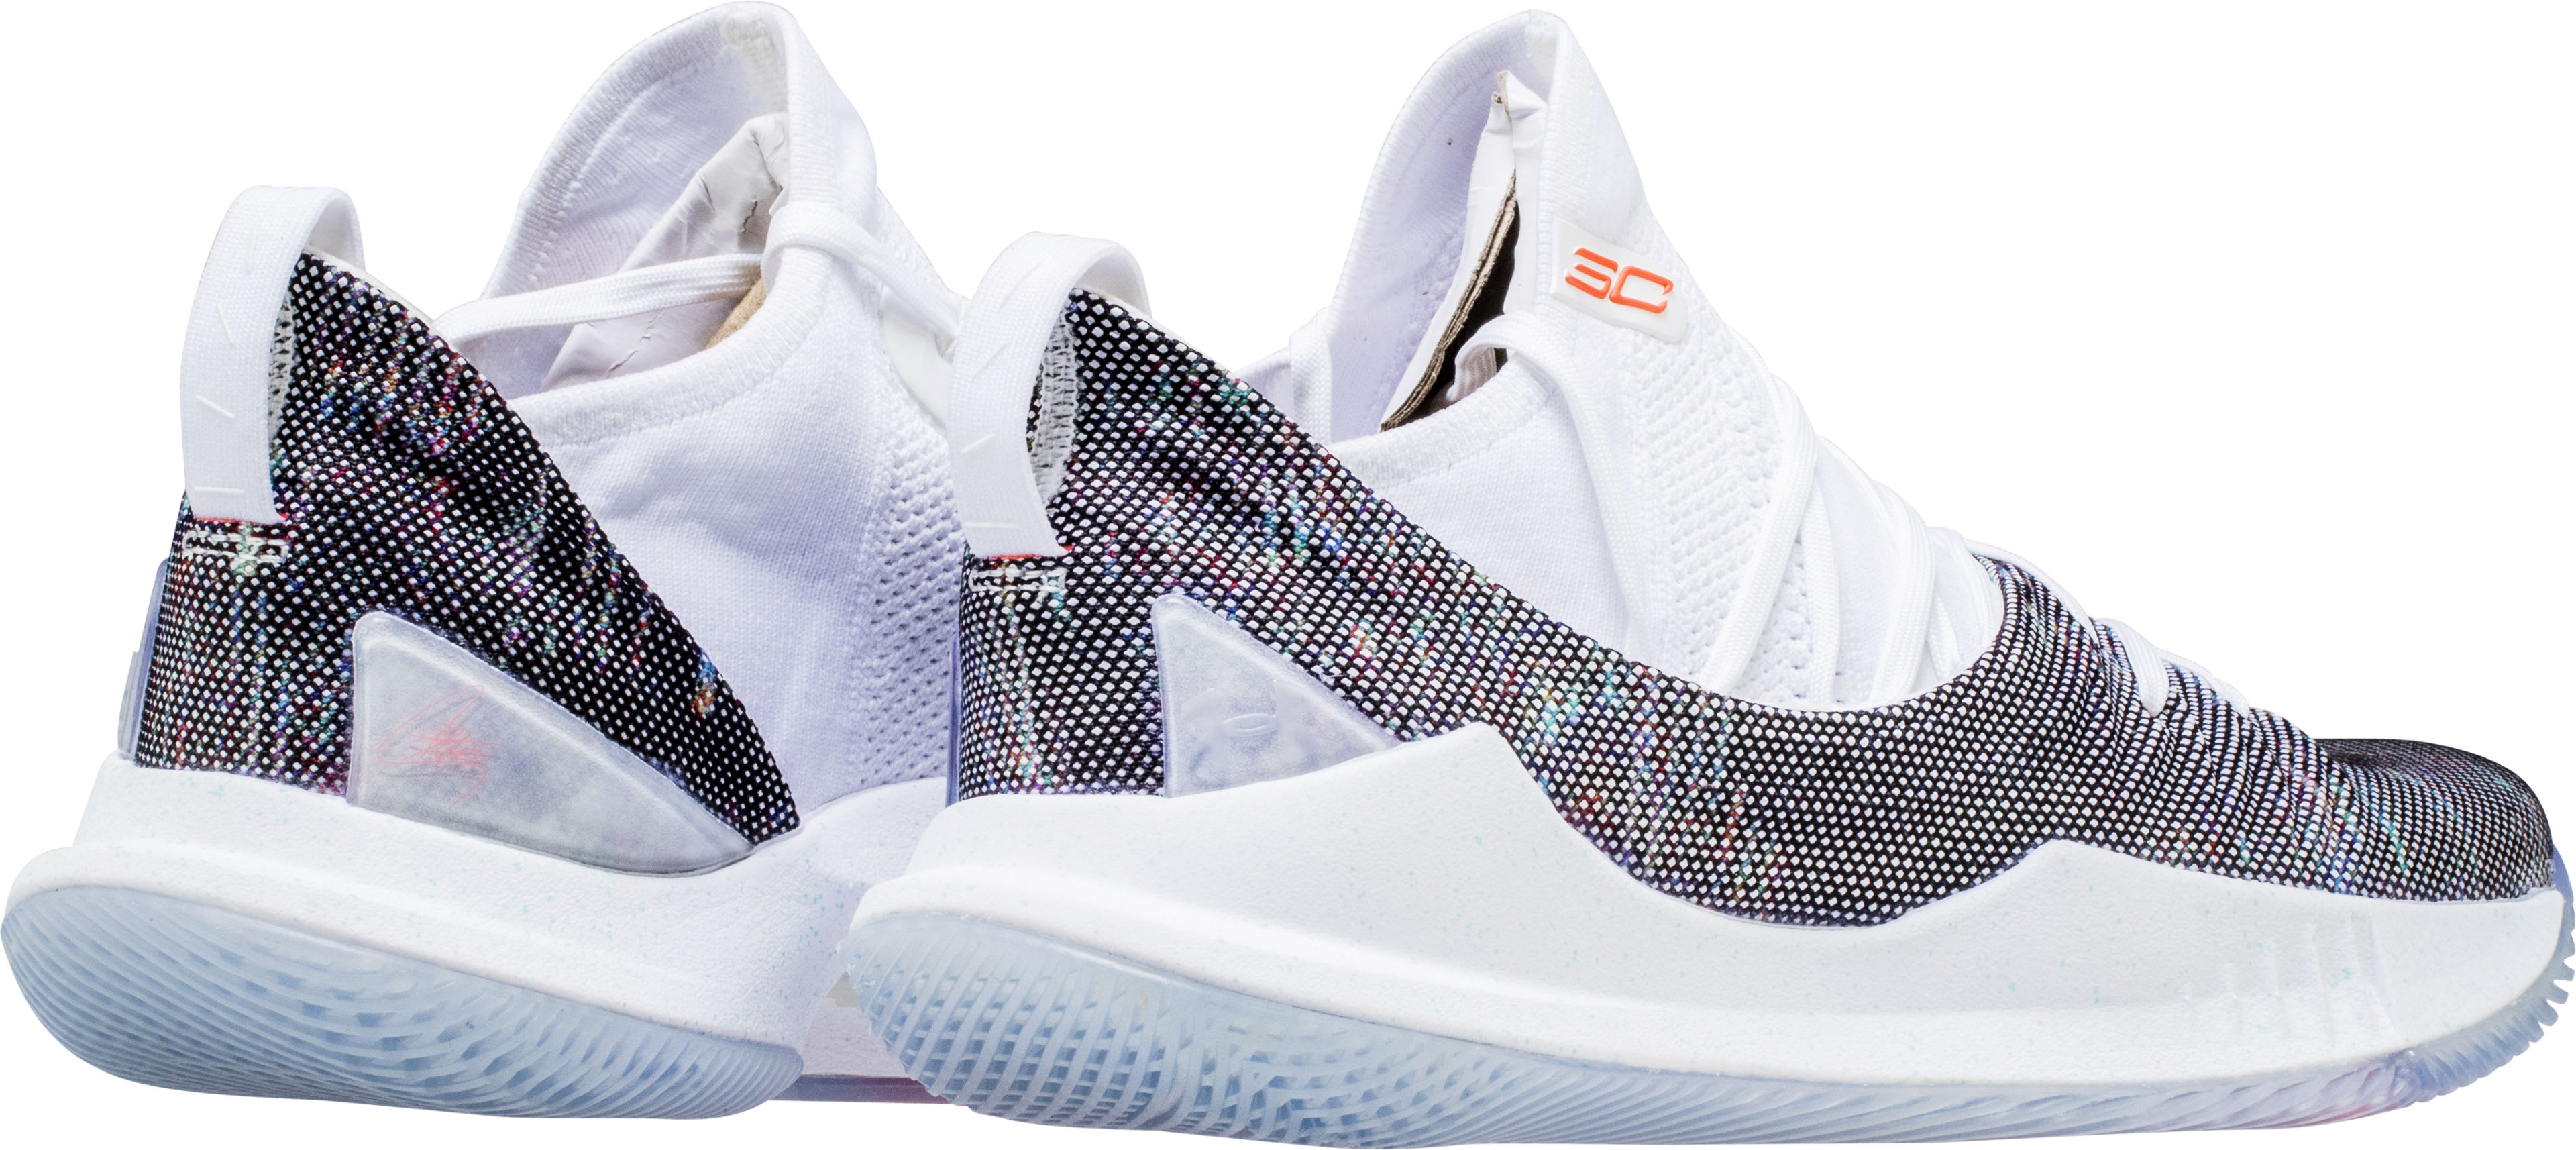 ee57ed016c4e Image via Shoe Palace Under Armour Curry 5  Welcome Home  (Heel)